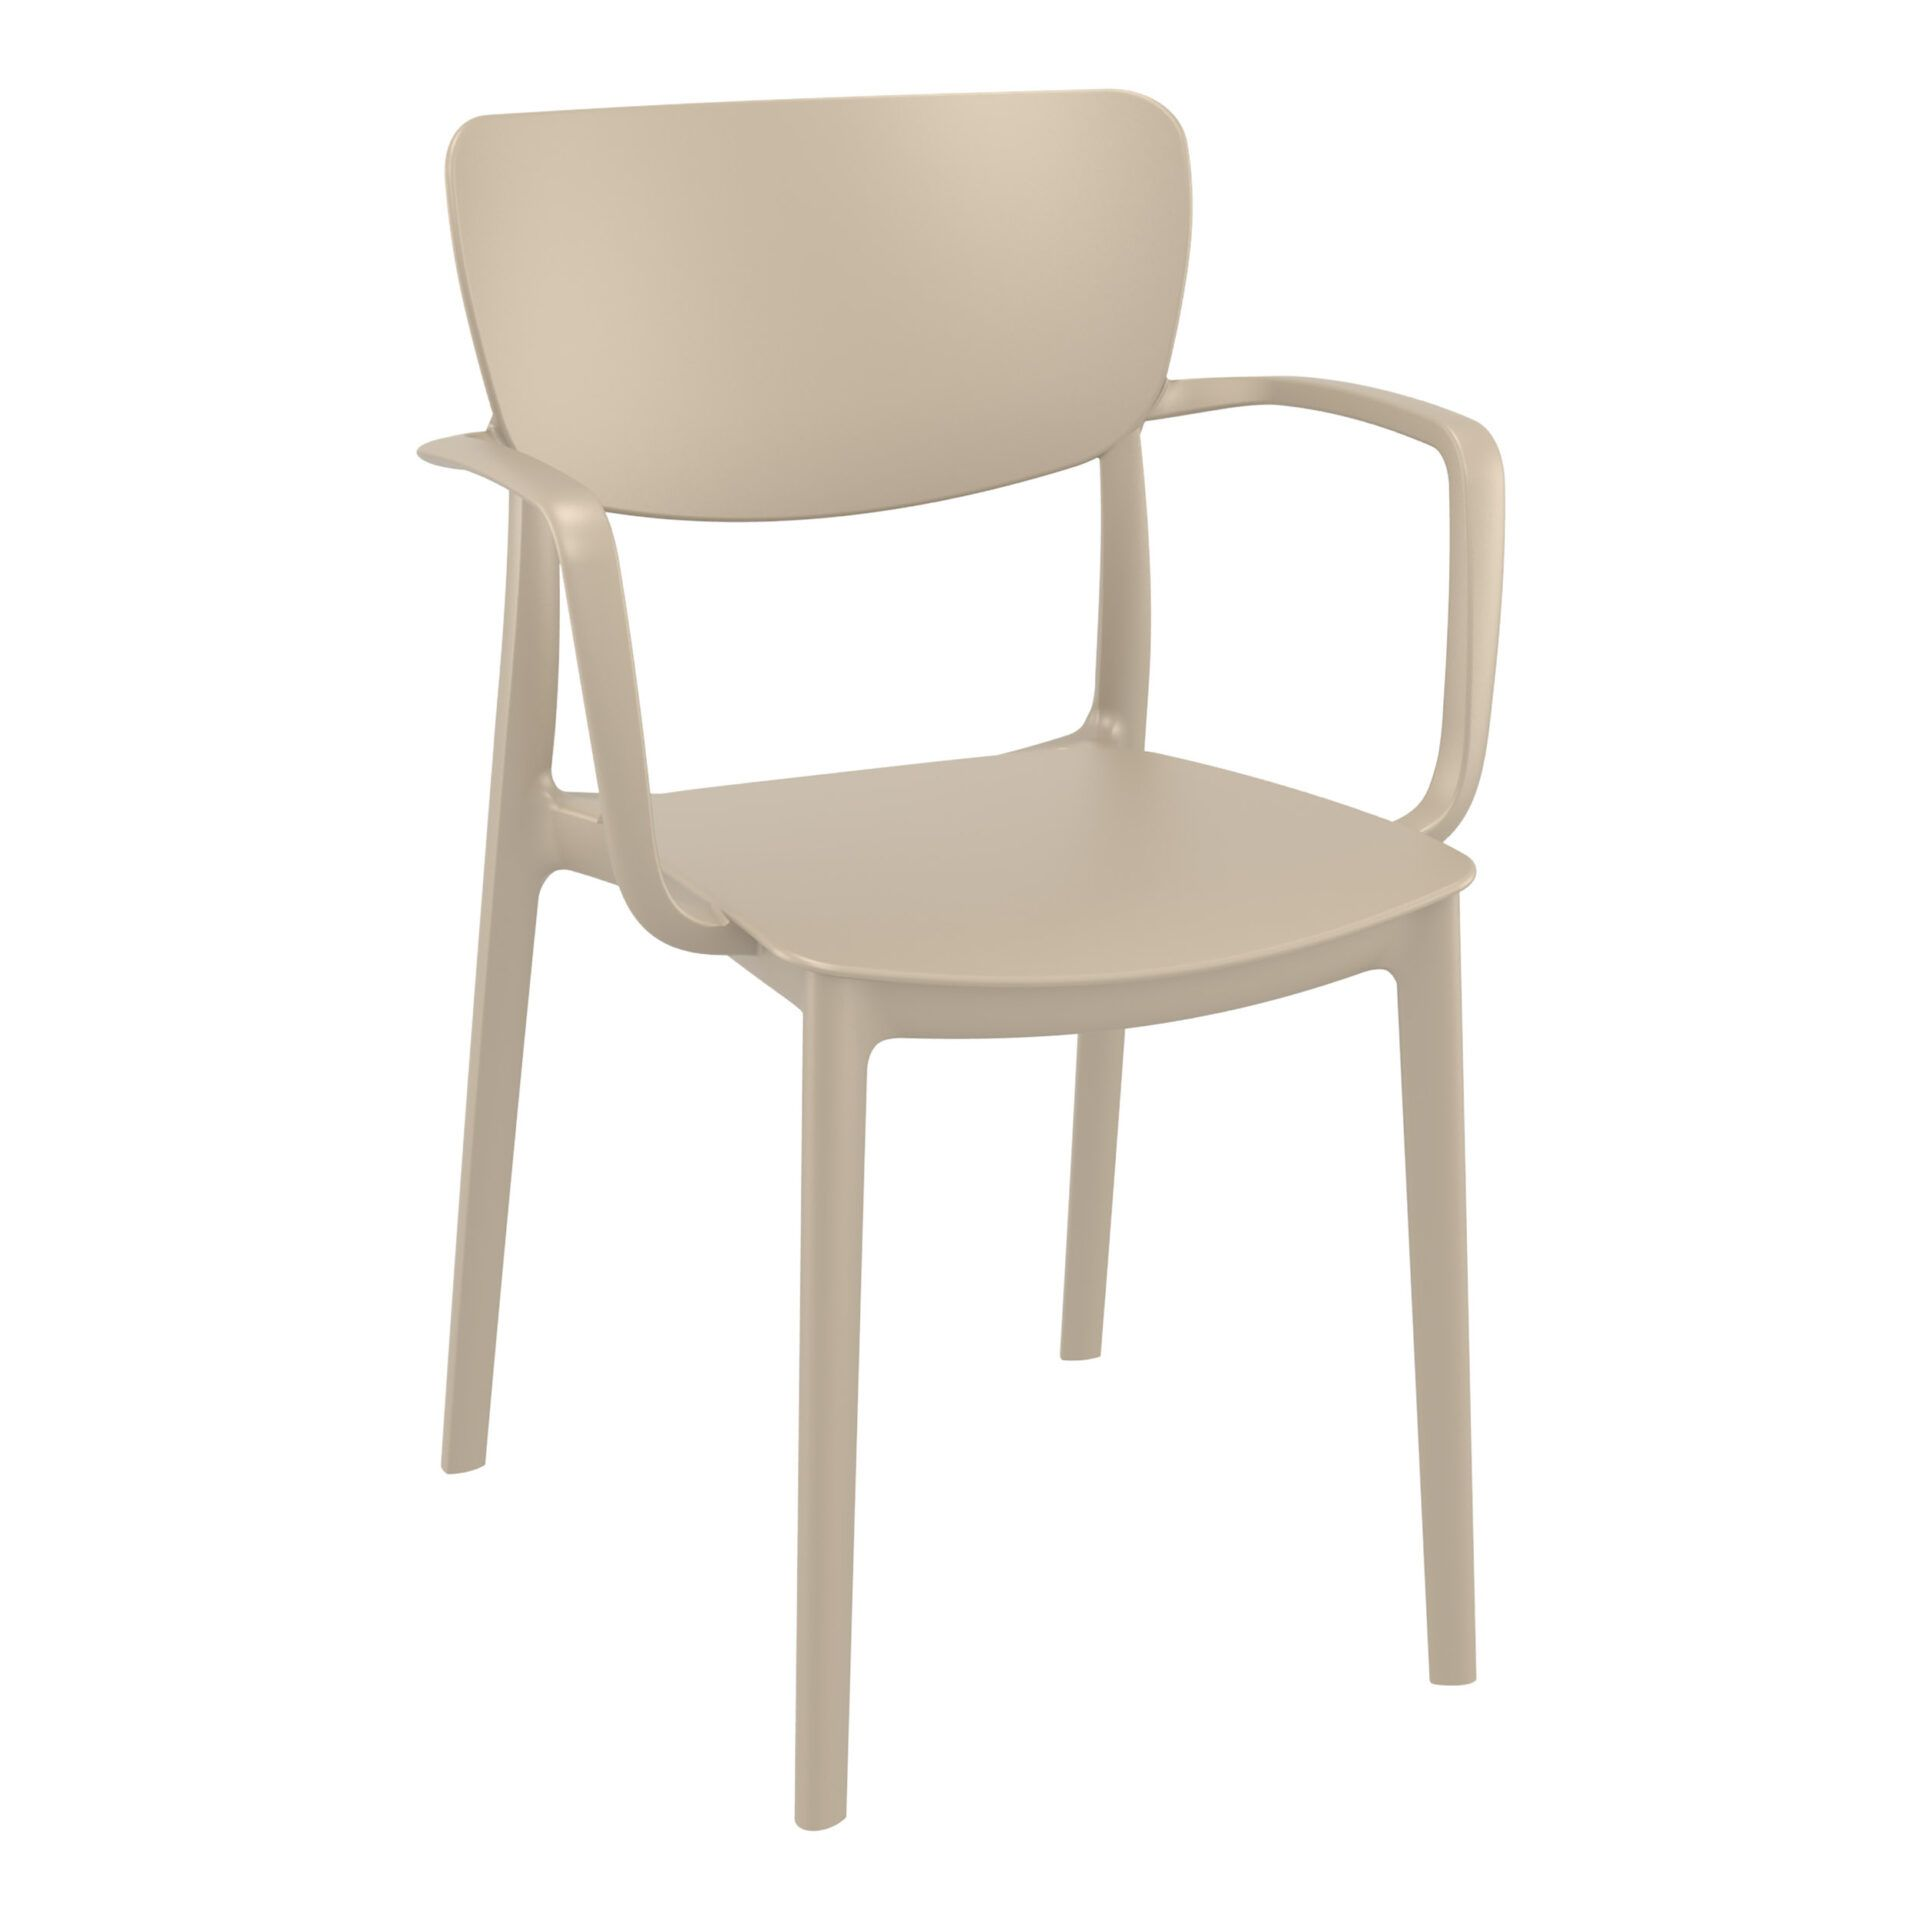 polypropylene hospitality seating lisa armchair taupe front side